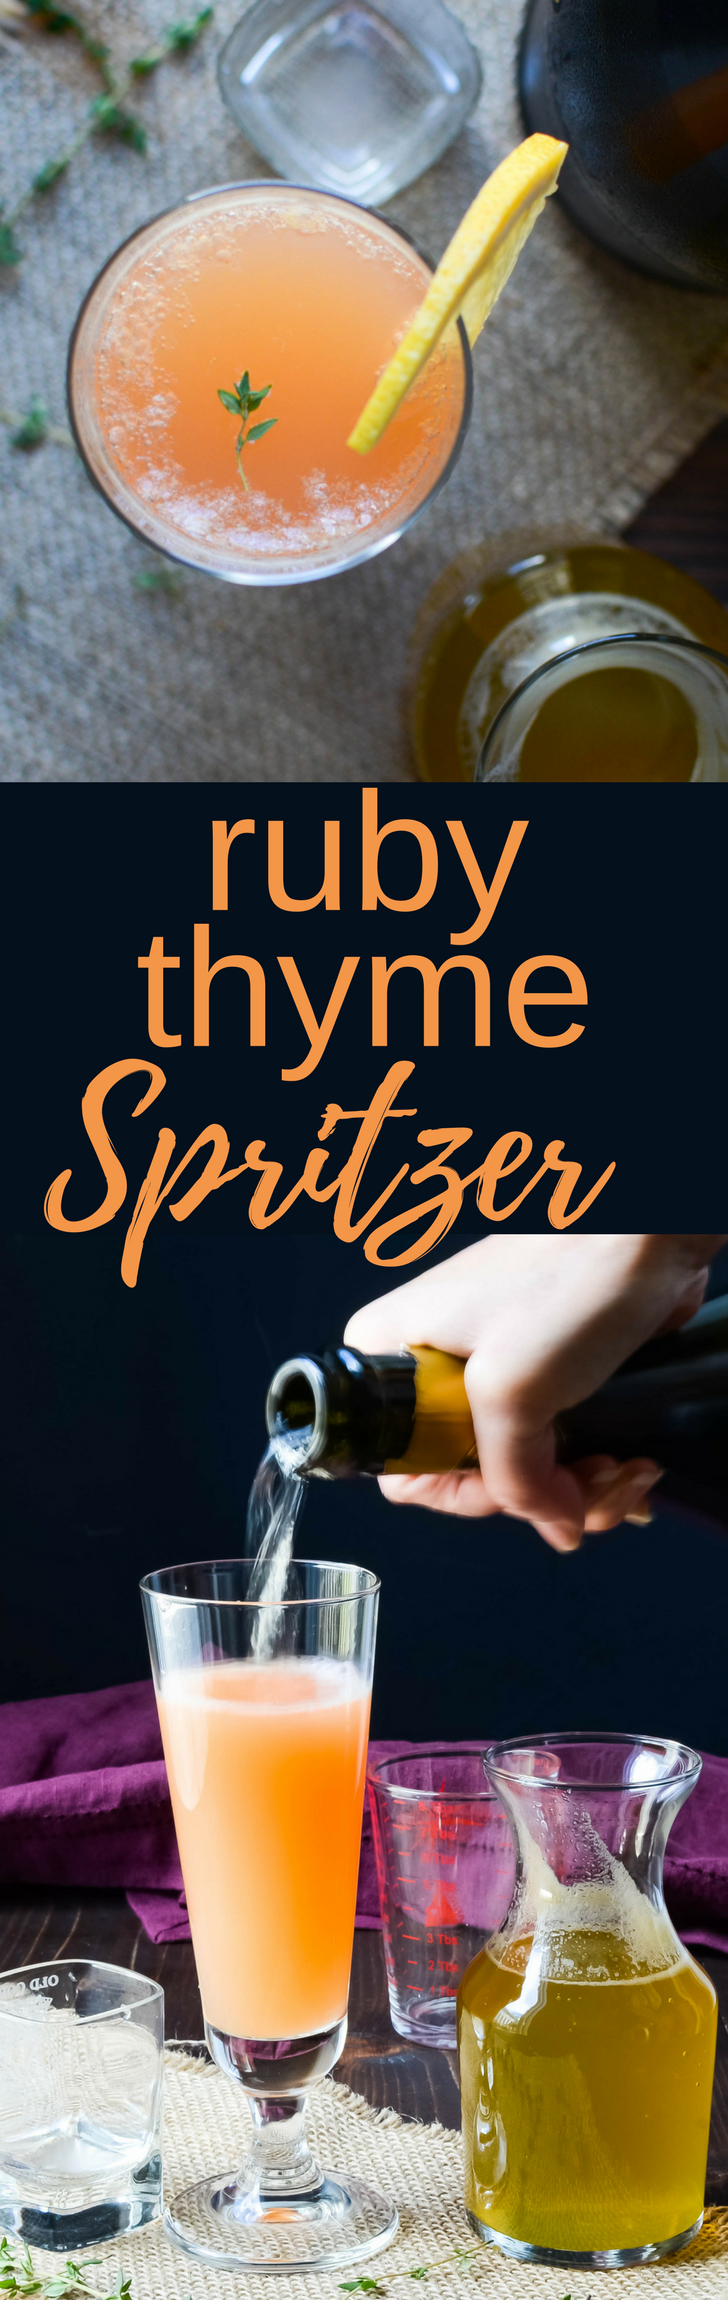 Ruby Thyme Spritzers are a spirited brunch cocktail!  Great for holidays and celebrations w/ honey thyme simple syrup, ruby red grapefruit juice & prosecco.